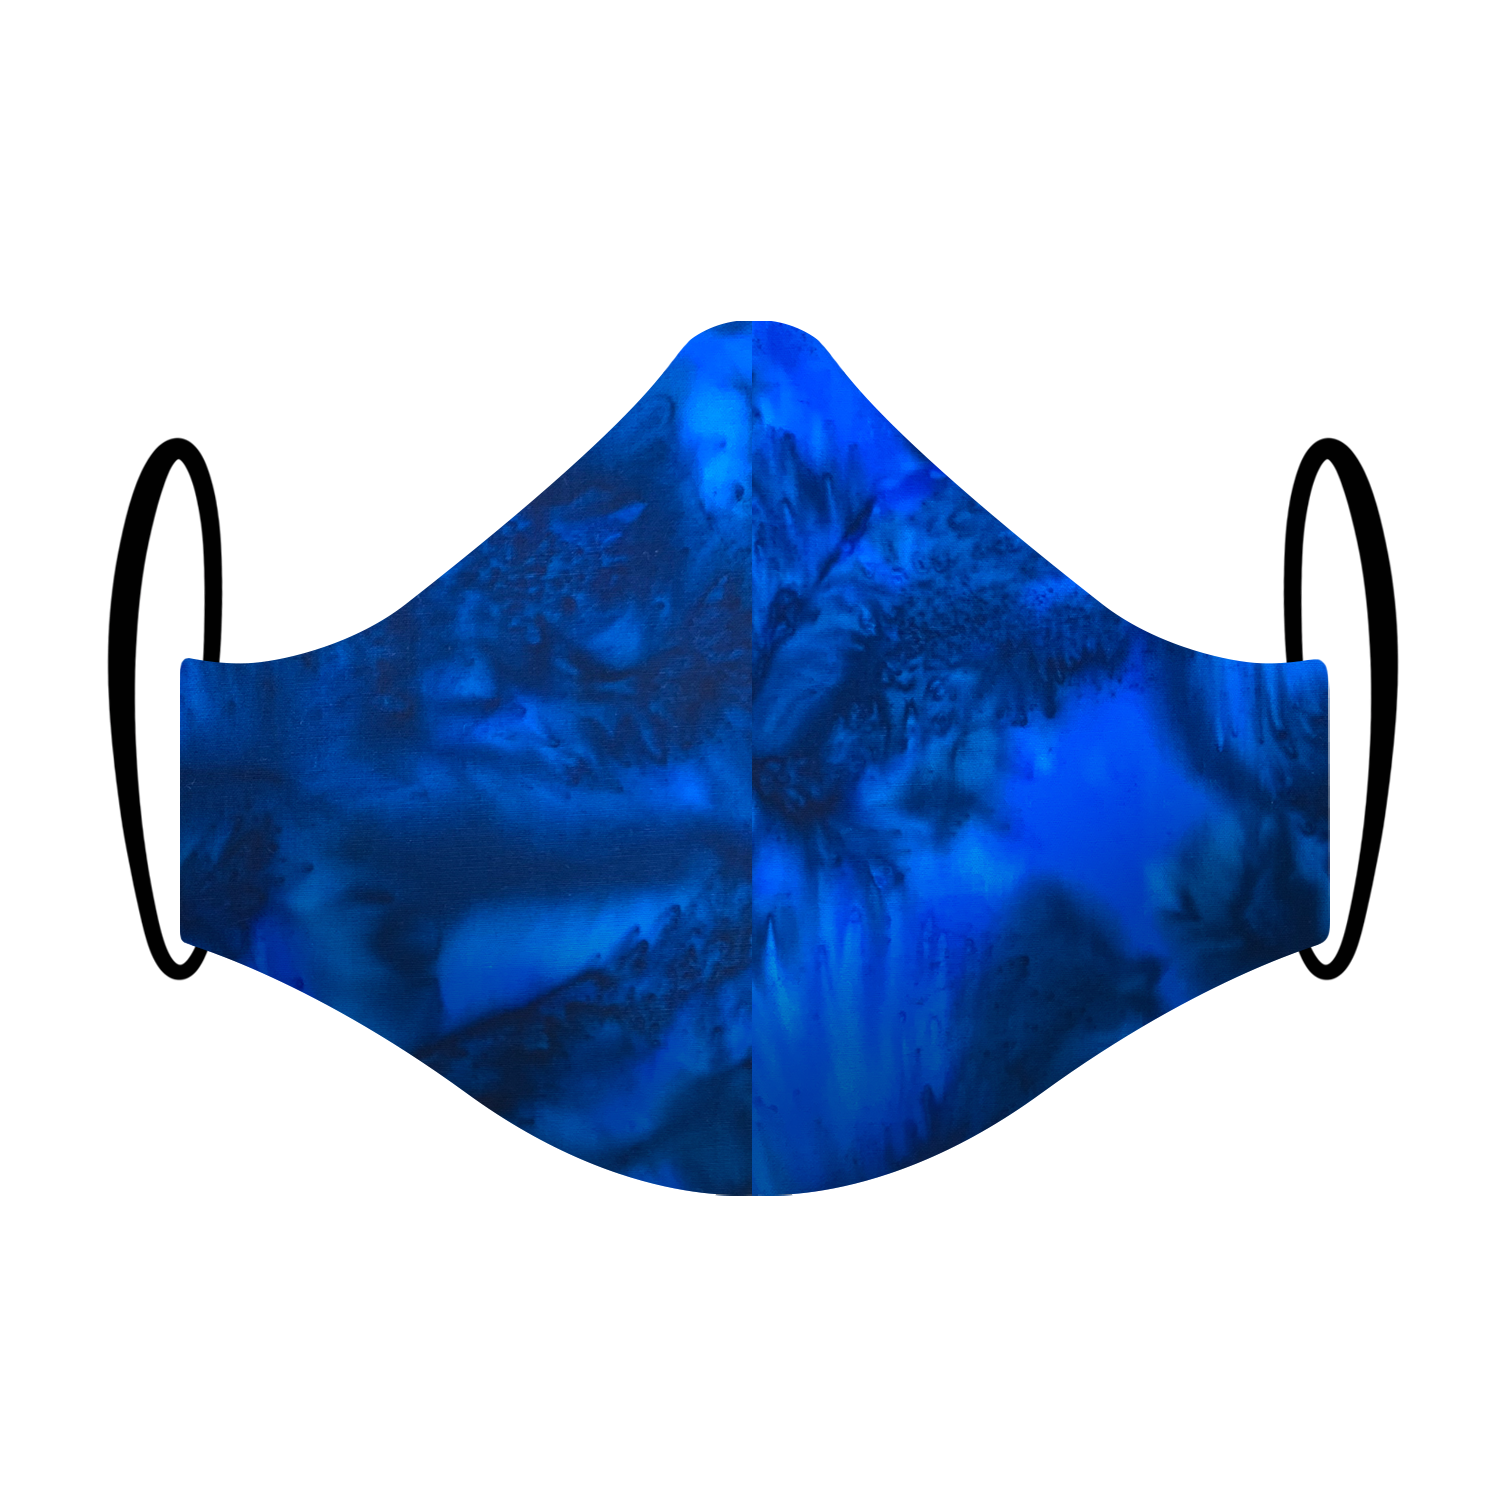 Triple layered face mask made in Melbourne Australia from cotton and poplin featuring a unique tie-dyed blue ocean print